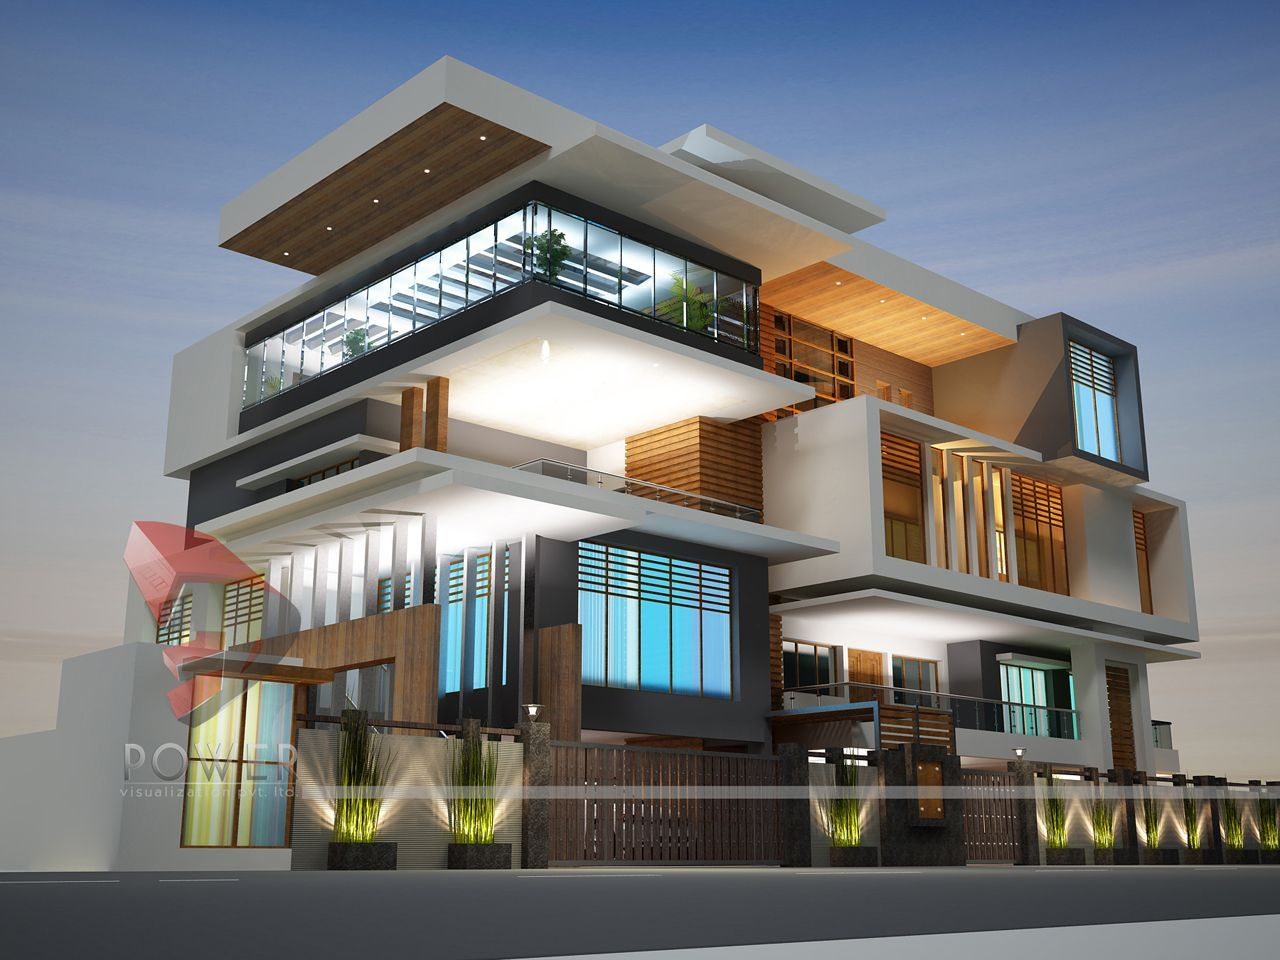 Modern house design in india architecture india modern for Architecture design of house in india